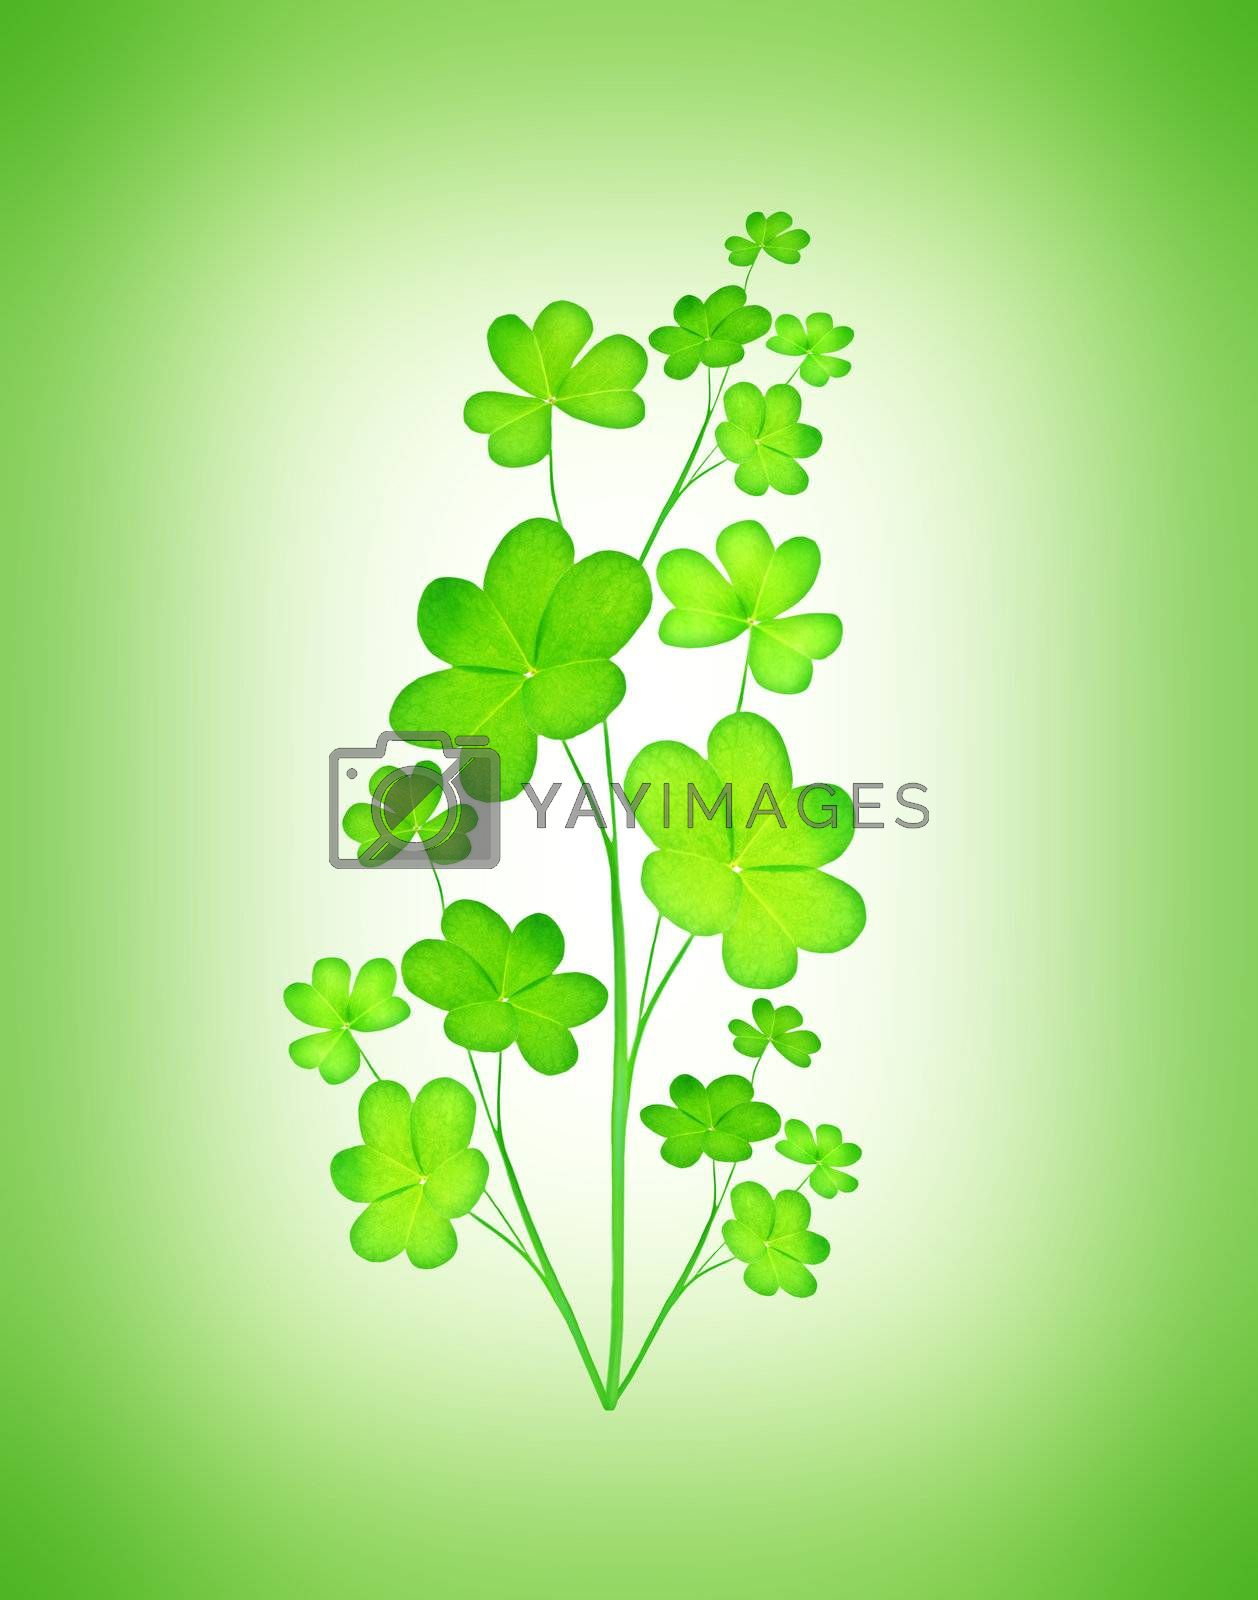 Green clover holiday plant, st.Patrick's day decoration isolated on green background with text space